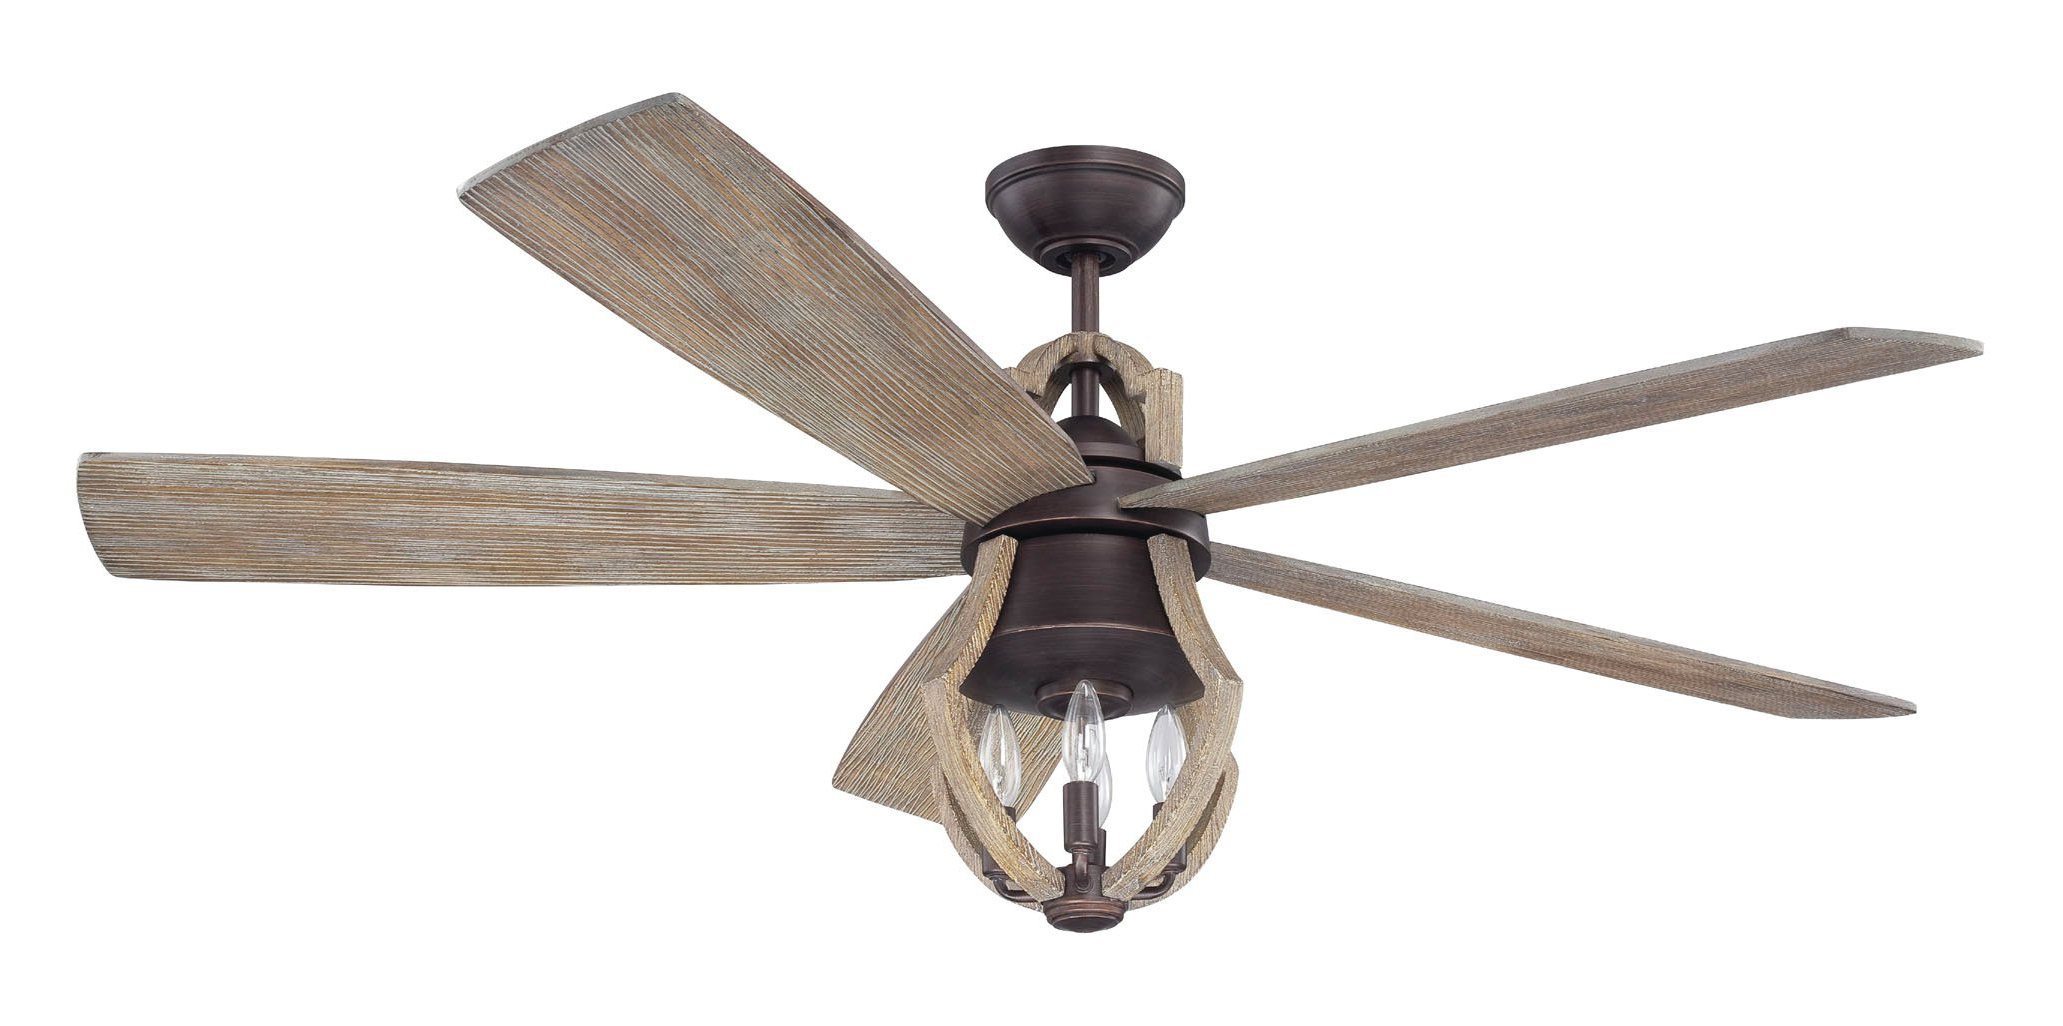 """Fashionable Ravenna 5 Blade Ceiling Fans Intended For 56"""" Marcoux 5 Blade Ceiling Fan With Remote, Light Kit Included (View 7 of 20)"""